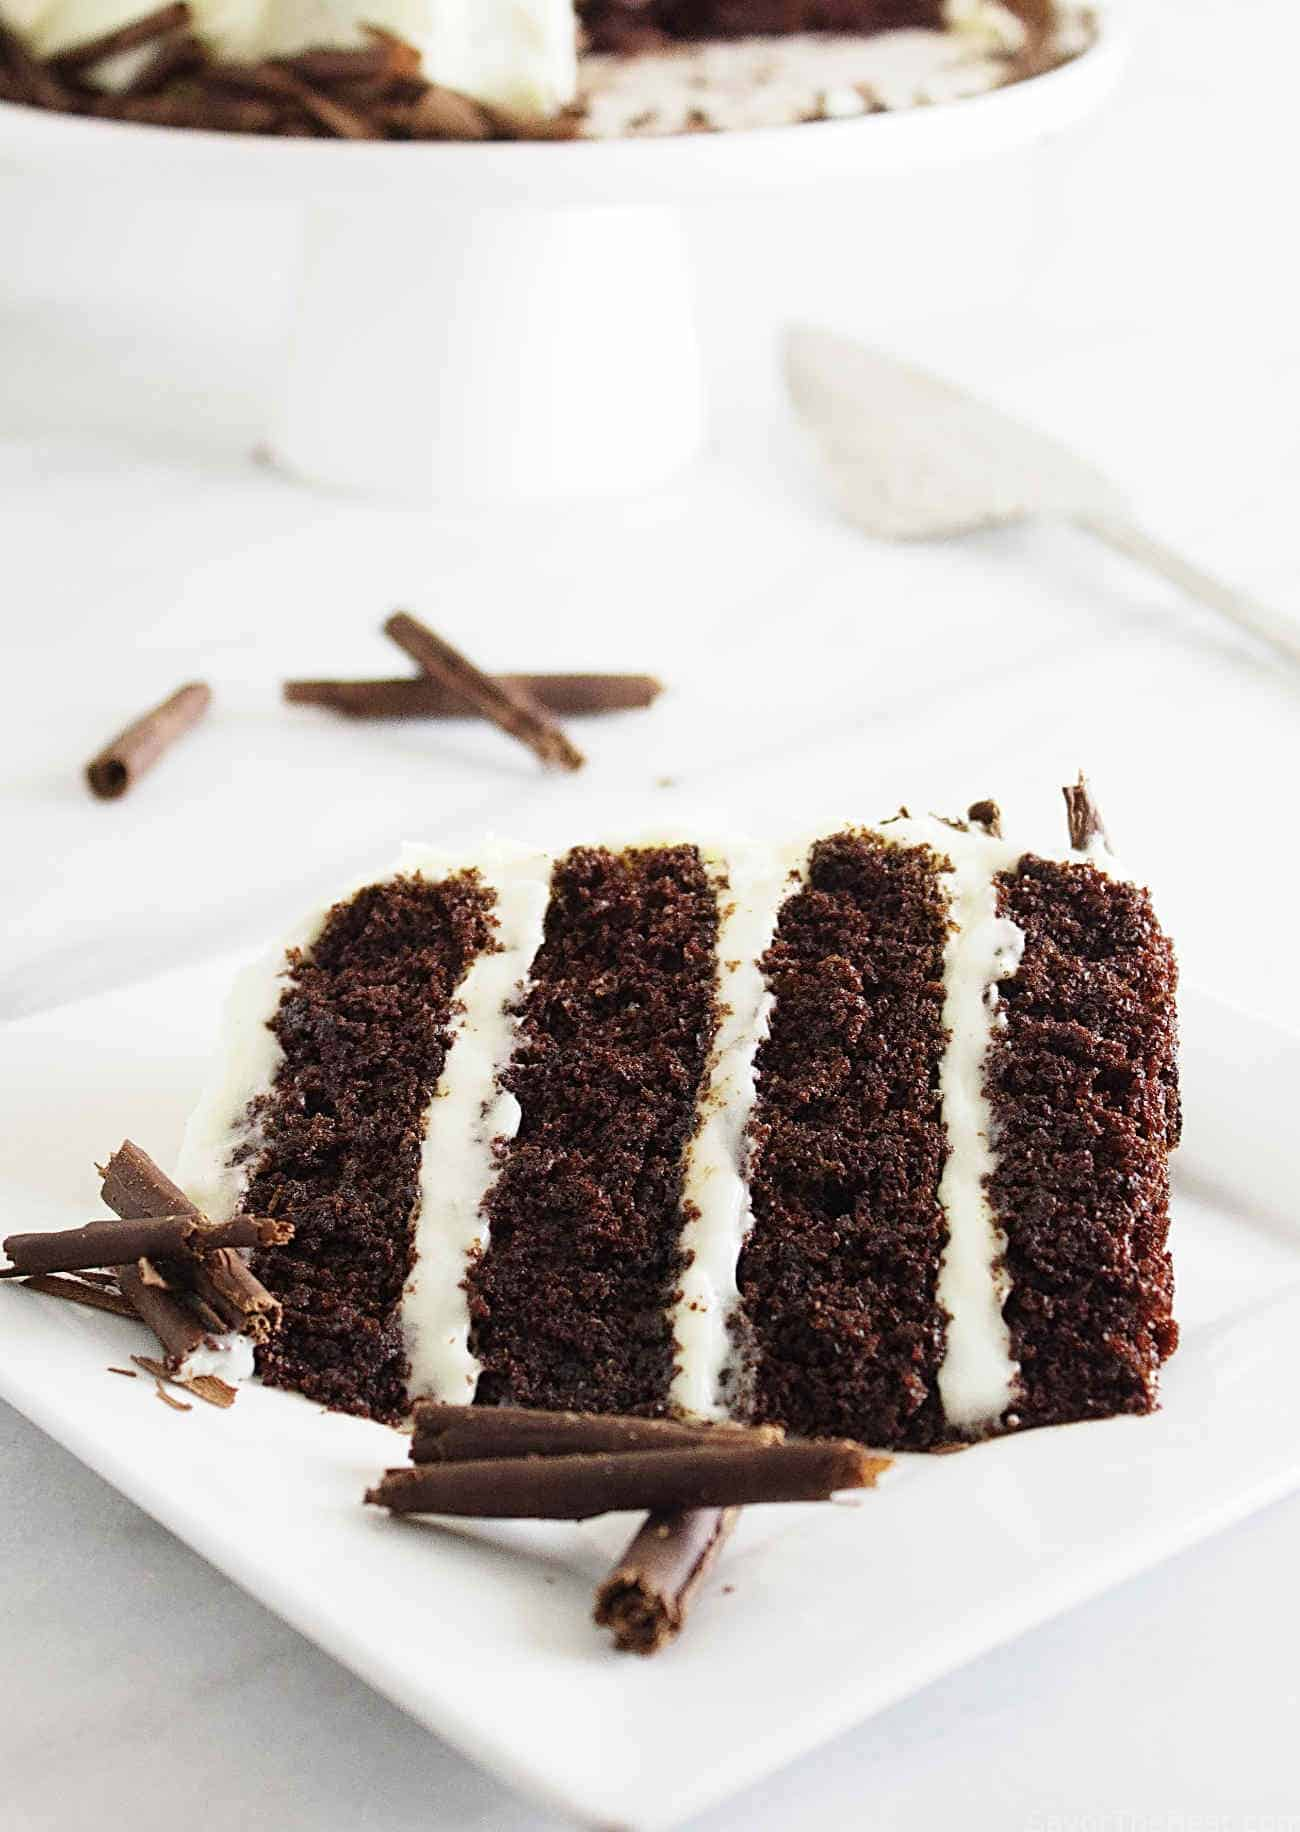 Intense Chocolate Cake with Cream Cheese Frosting - Savor the Best